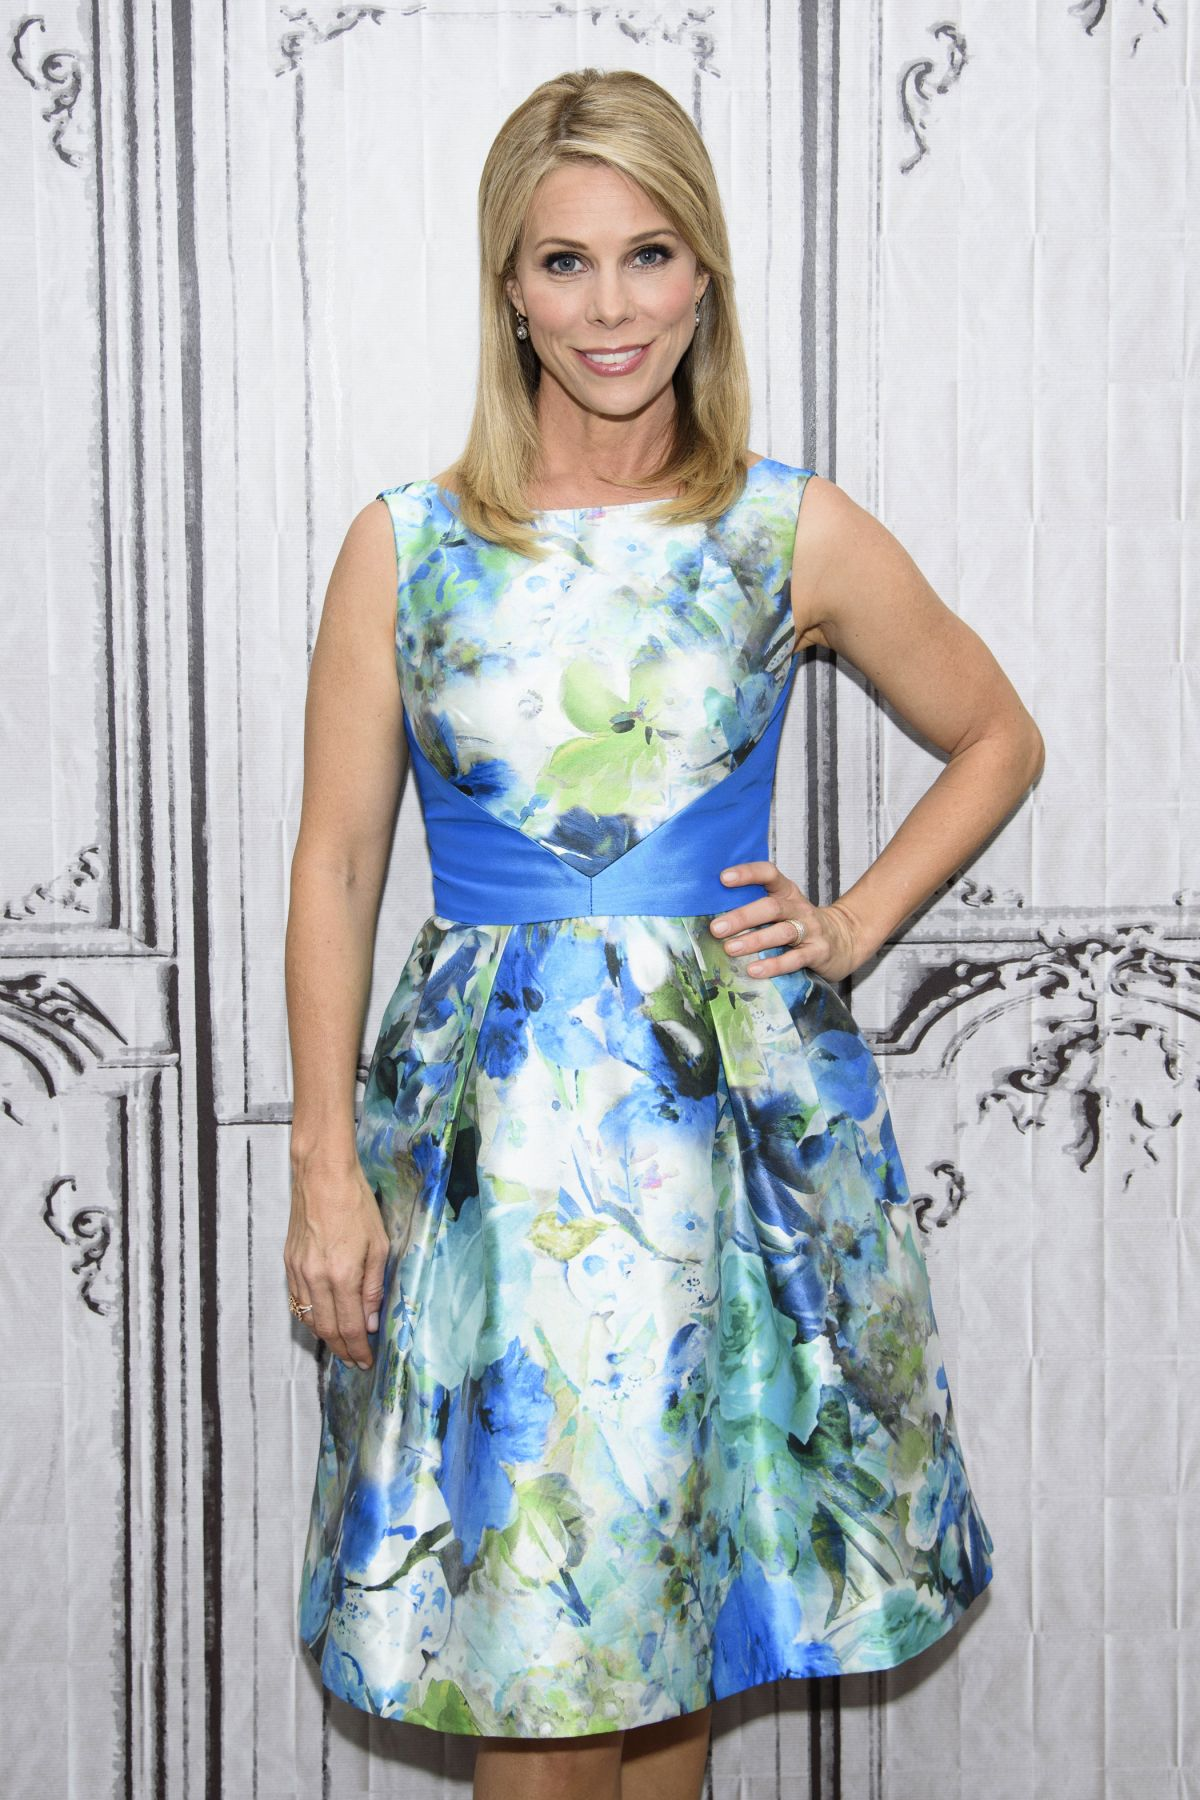 CHERYL HINES at AOL Build Speaker Series in New York 08/03/2016